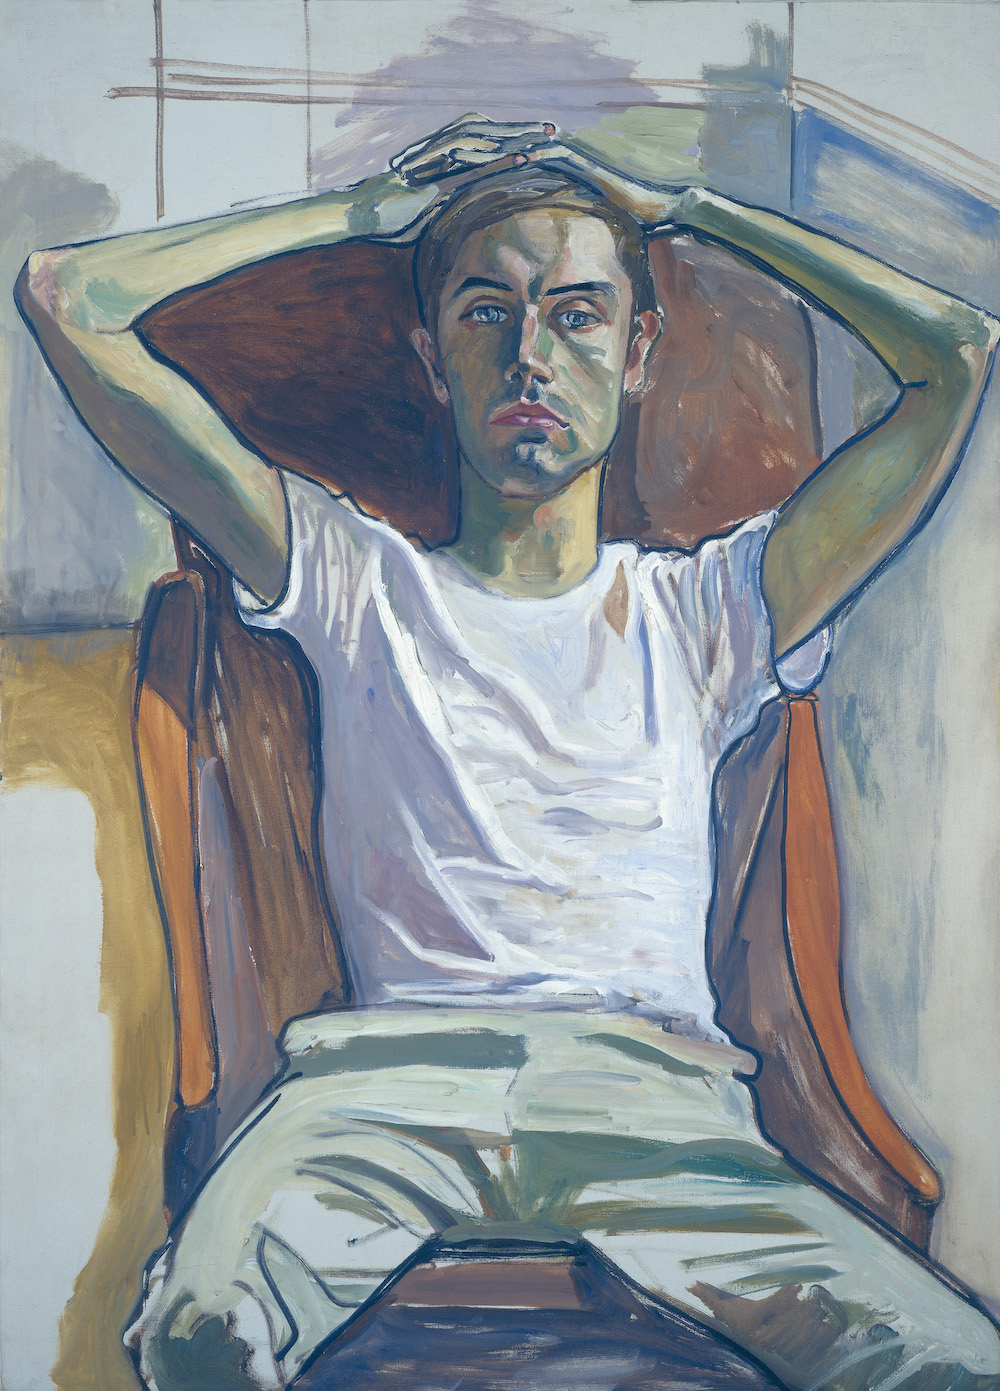 Alice Neel, Hartley, 1966, oil on canvas, 50 × 36″. National Gallery of Art, Washington, D.C. Gift of Arthur M. Bullowa, in honor of the fiftieth anniversary of the National Gallery of Art. © The Estate of Alice Neel.